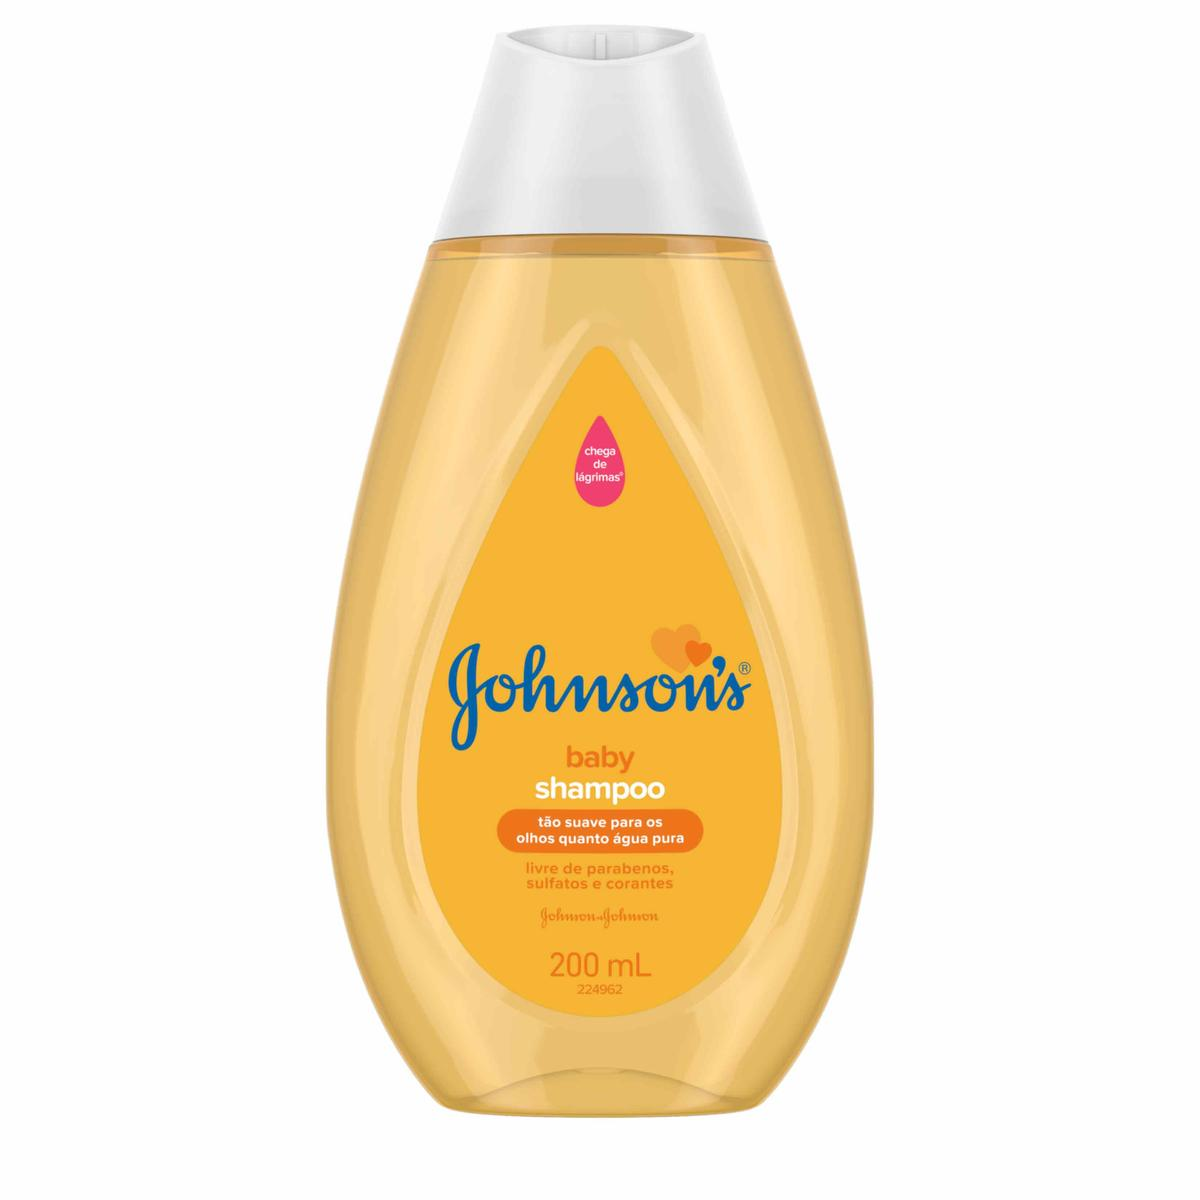 JOHNSON'S® baby Shampoo